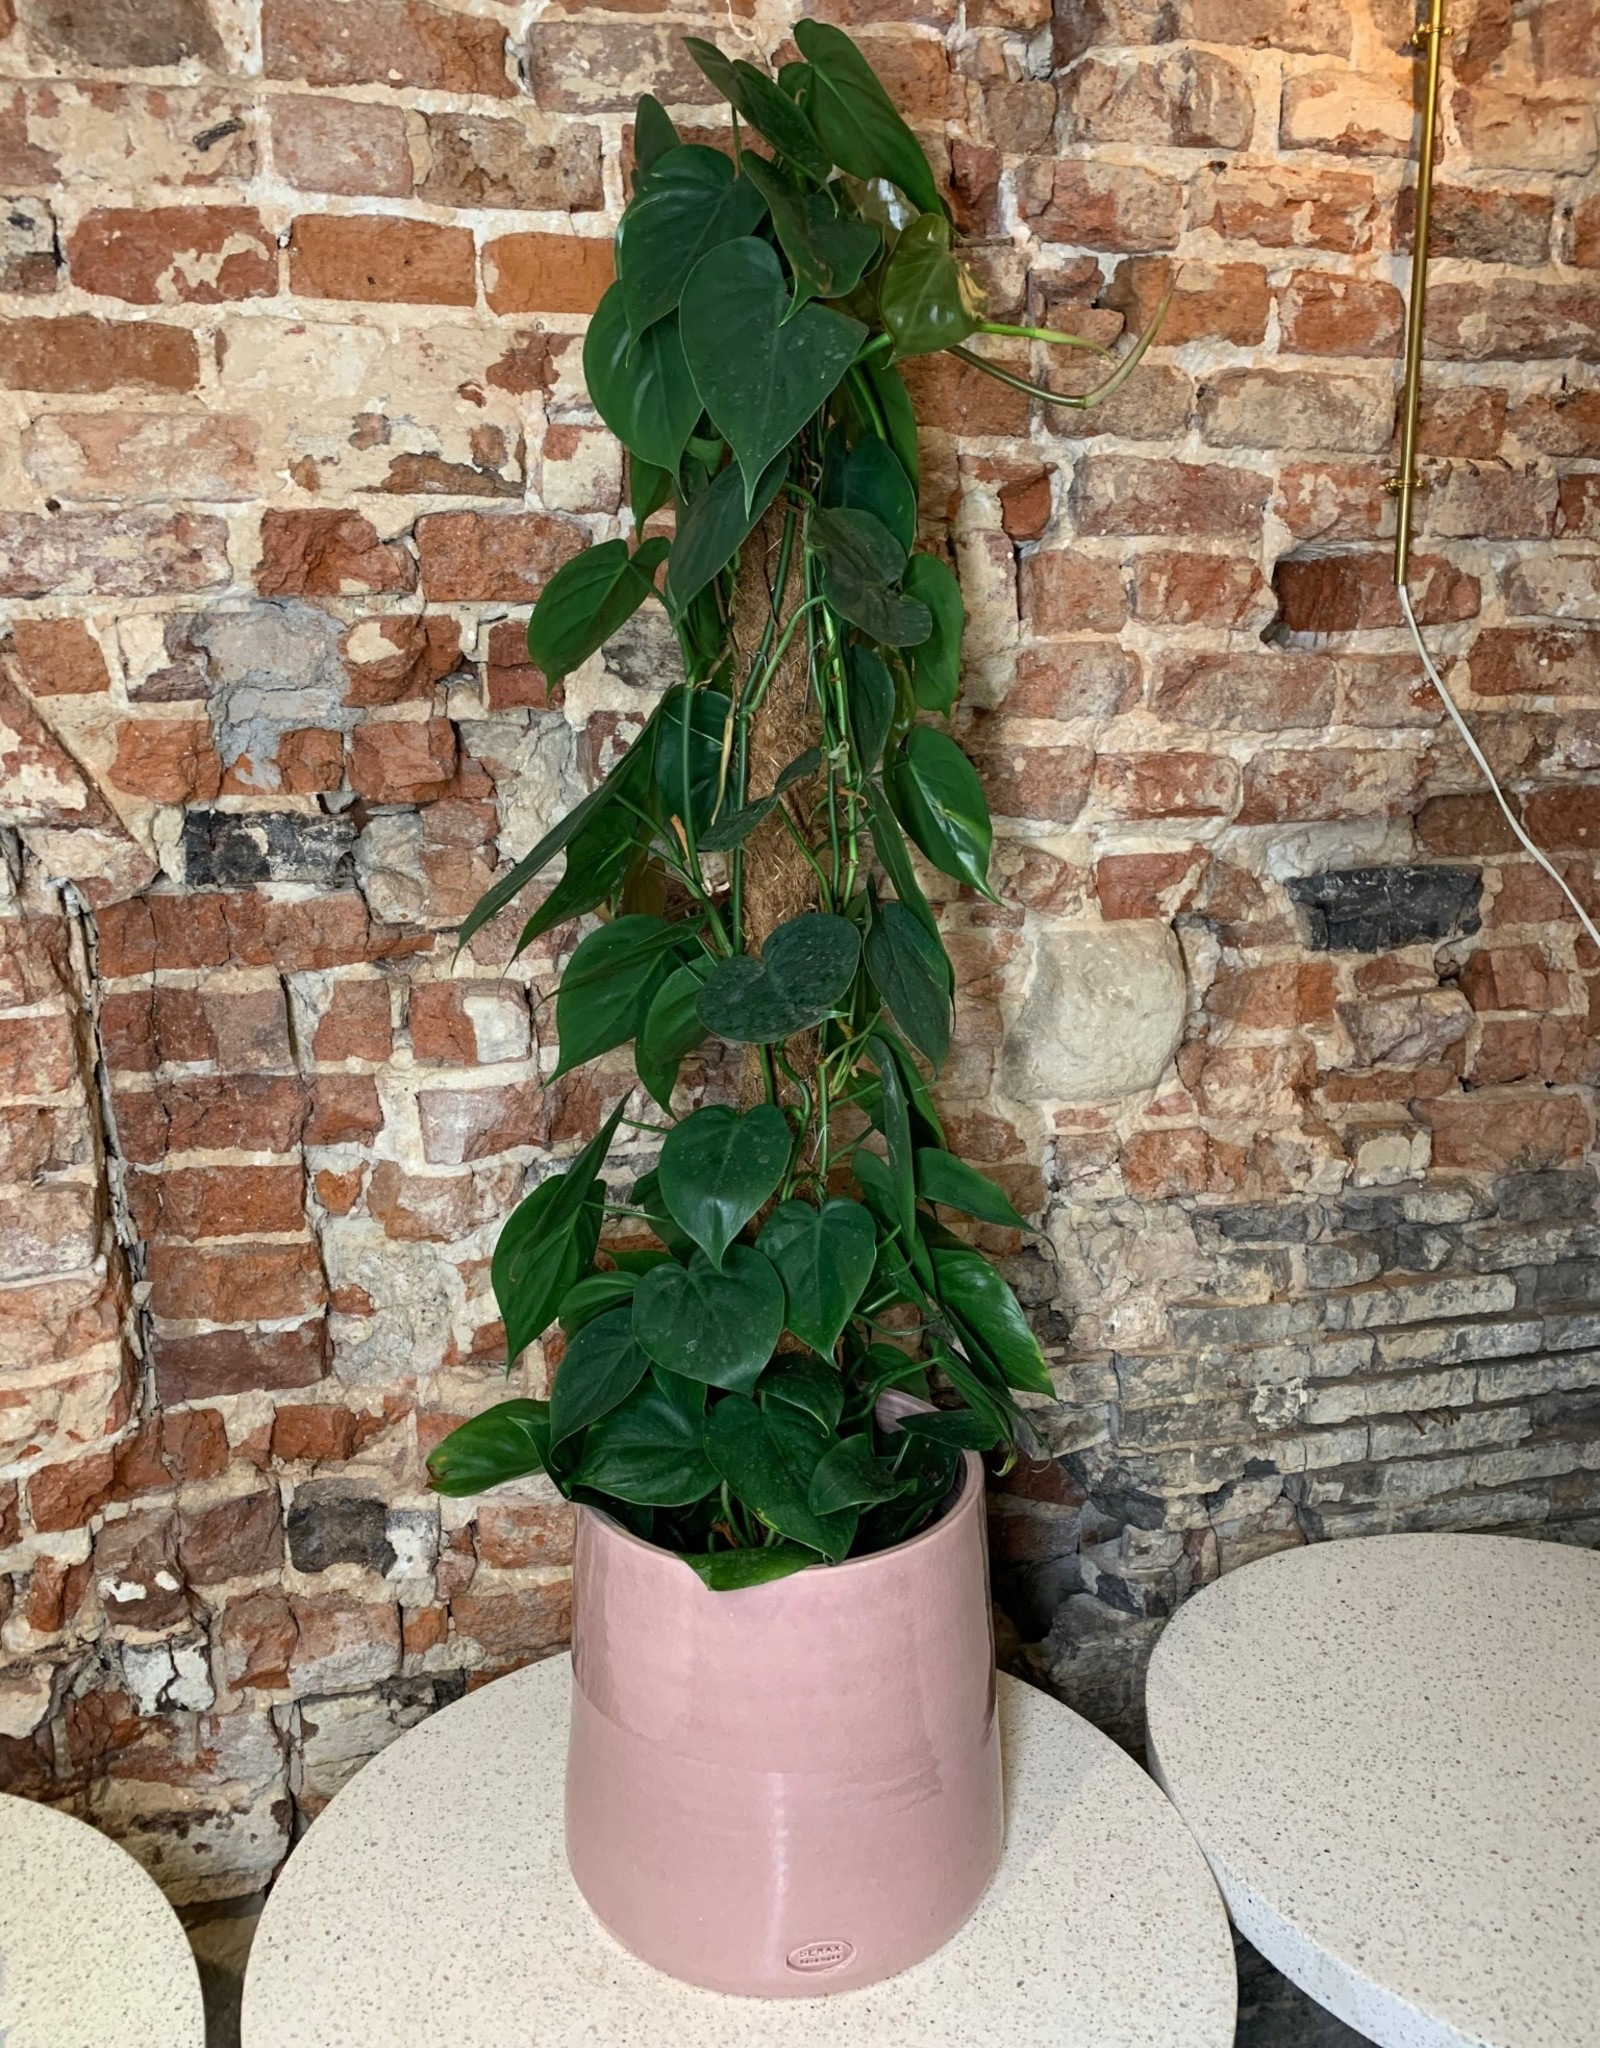 GRUUN Philodendron scandens Ø21 h100cm (moss pole)